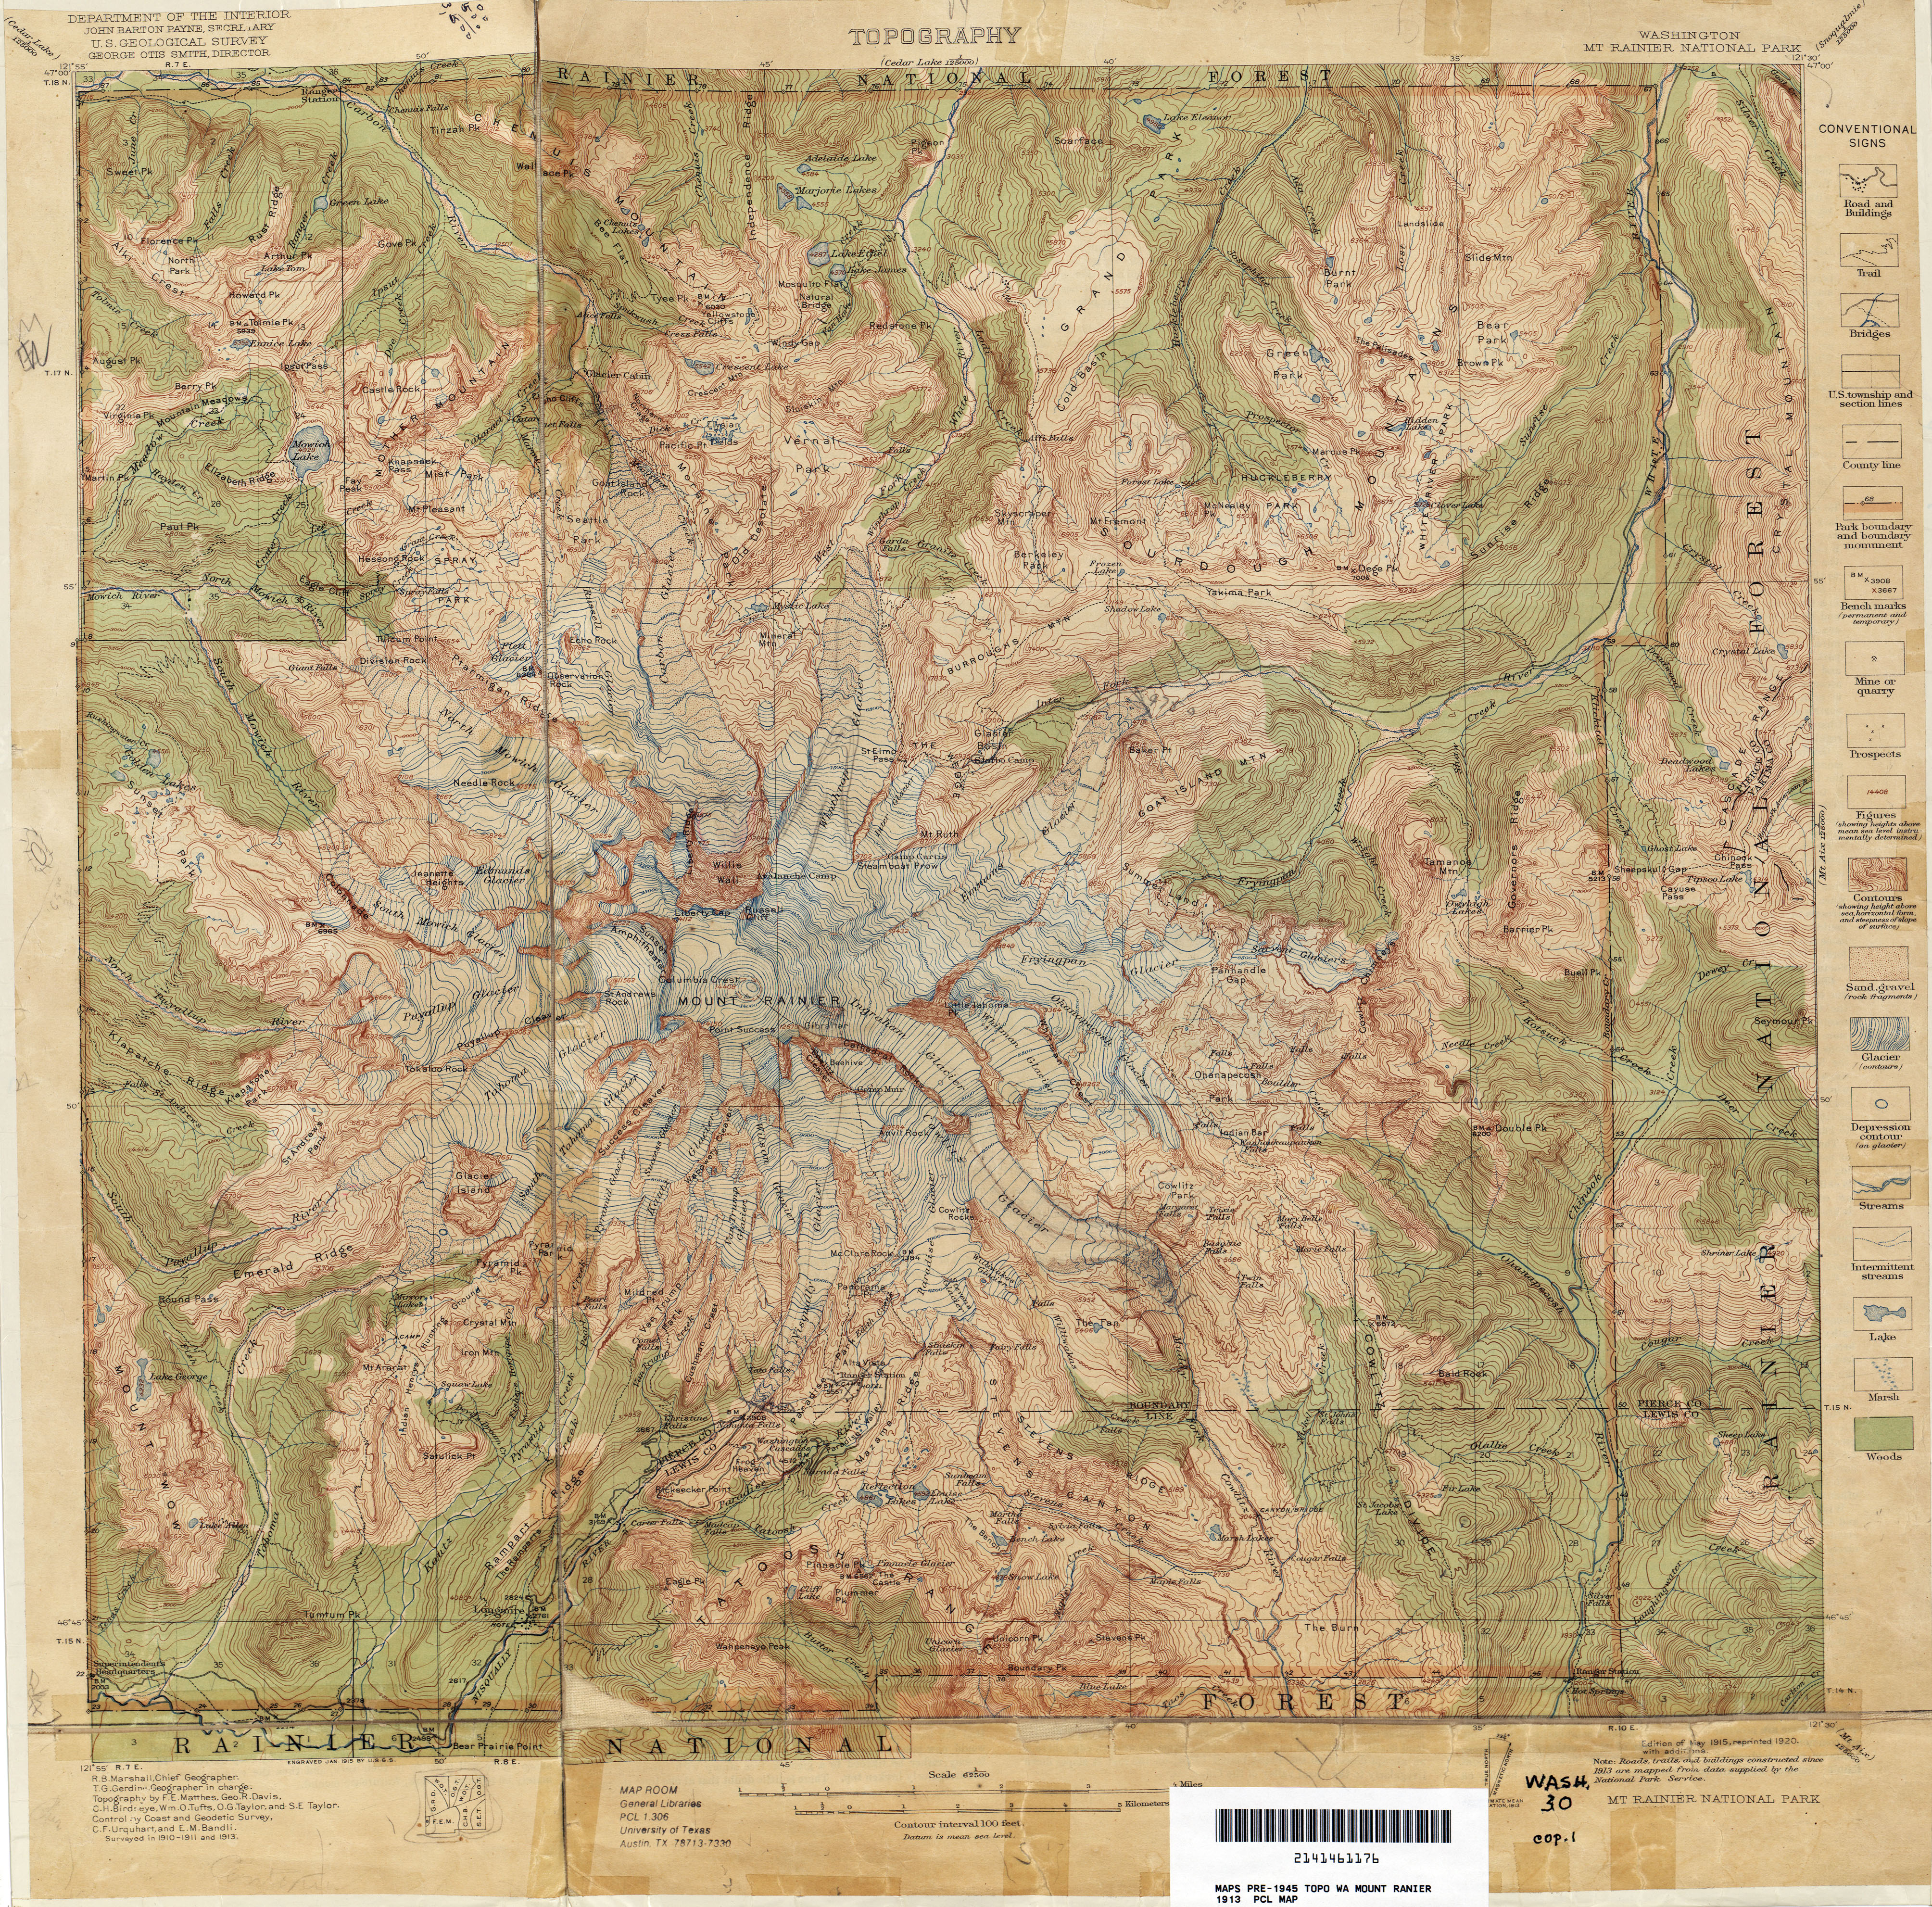 Mt Rainier Topographic Map.Washington Historical Topographic Maps Perry Castaneda Map